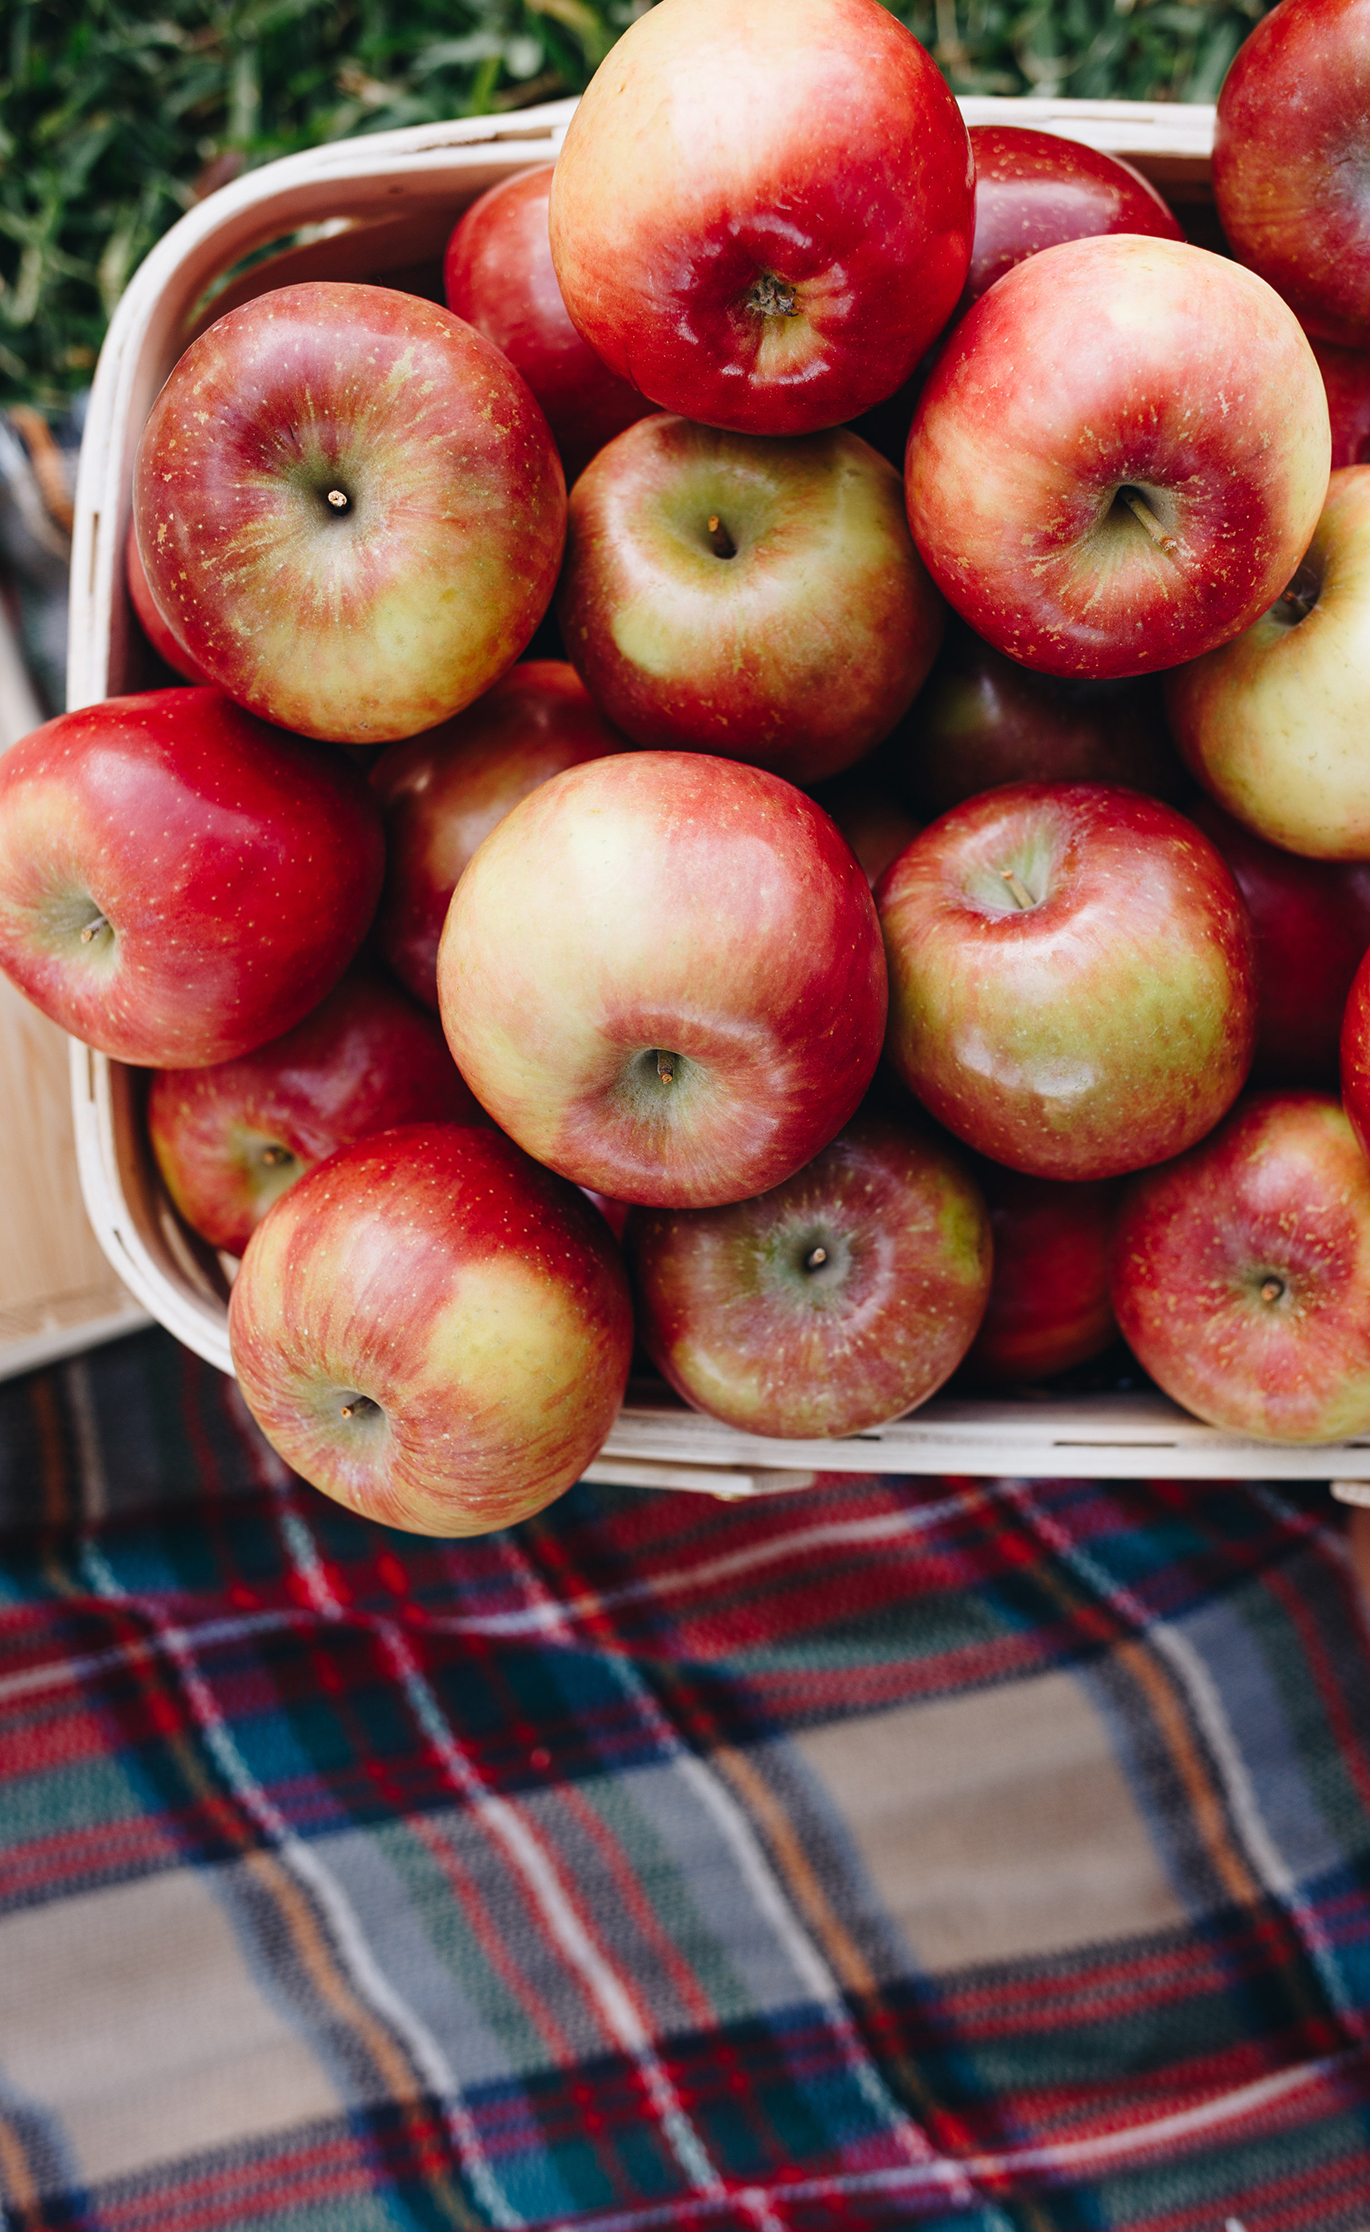 What to make with apples